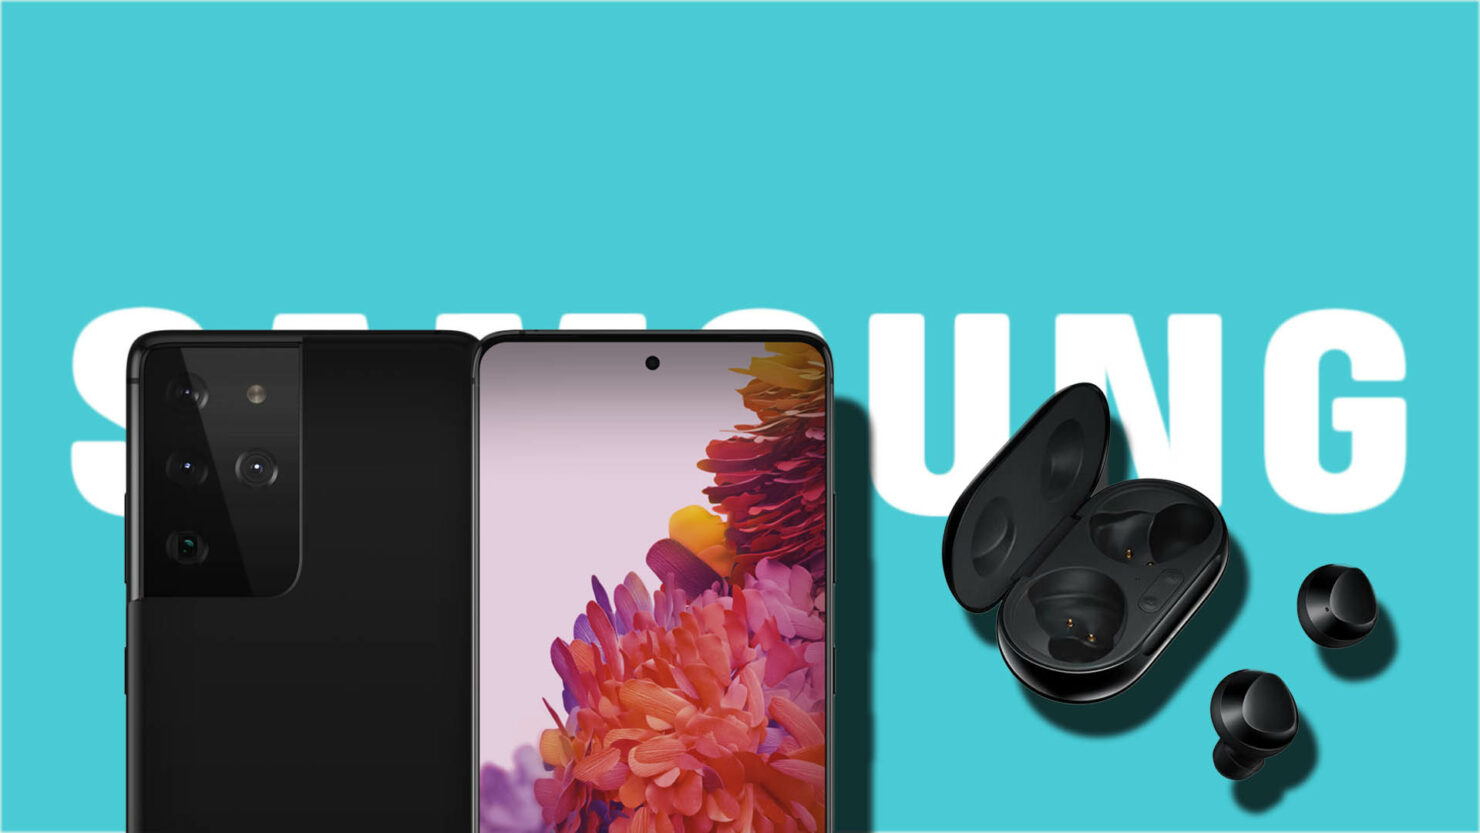 Every Galaxy S21 Model Might Come Bundled With Samsung's Wireless Galaxy Buds Beyond Instead of Wired AKG Earphones